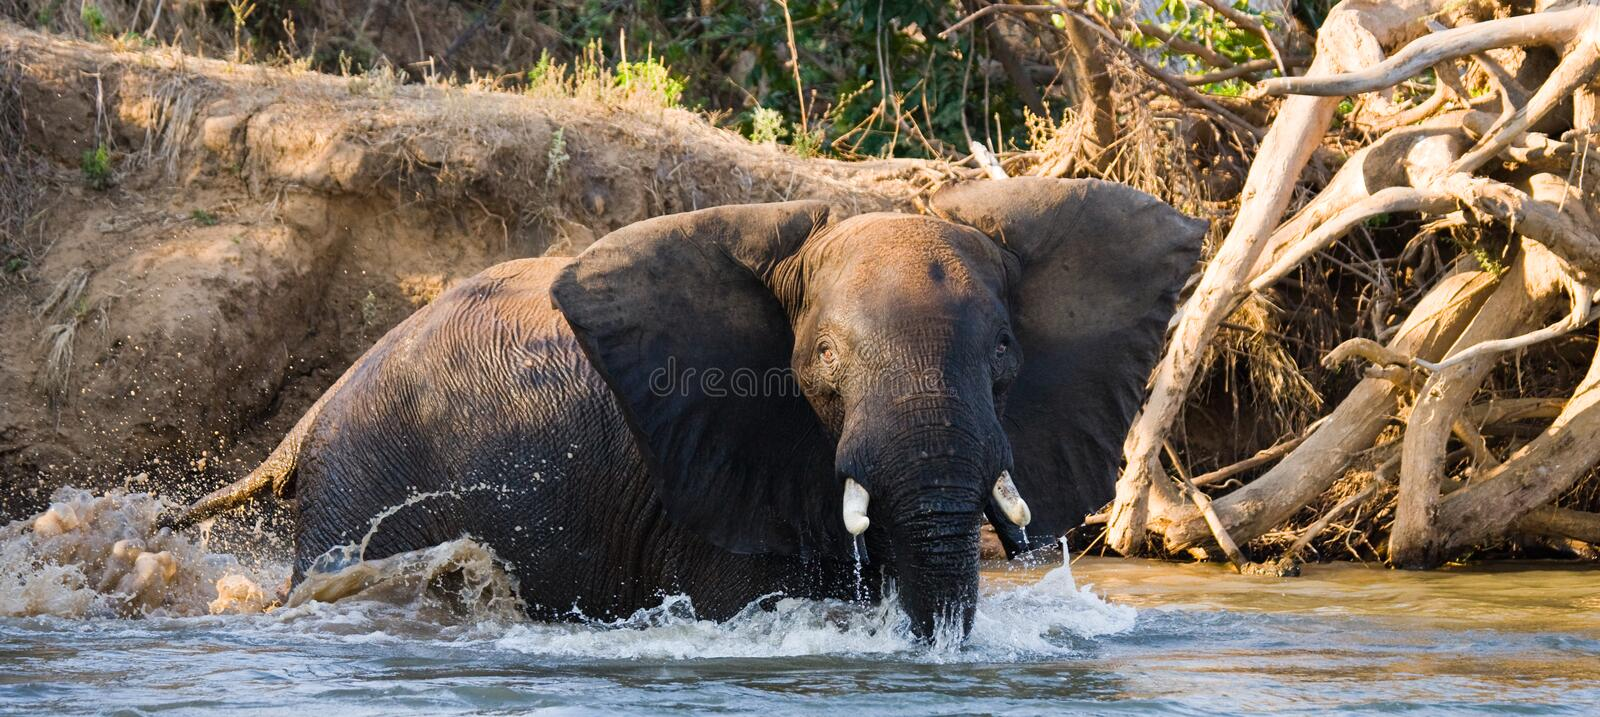 The elephant is in the water. Zambia. Lower Zambezi National Park. Zambezi River. Zambia. Lower Zambezi National Park. Zambezi River royalty free stock images